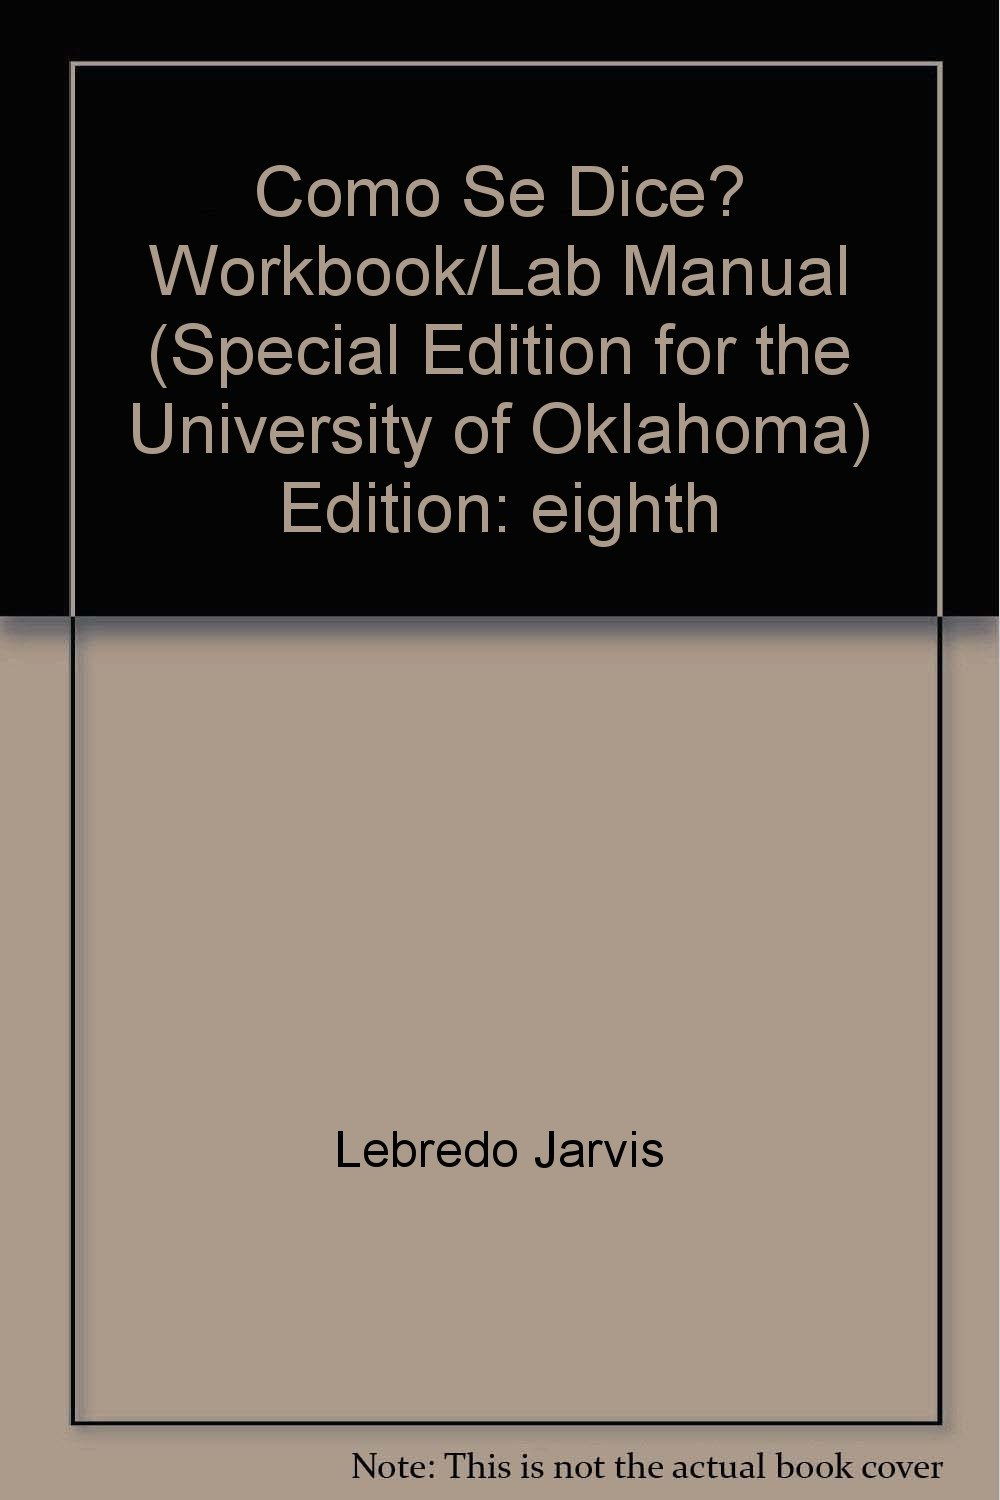 Como Se Dice? Workbook/Lab Manual (Special Edition for the University of  Oklahoma): n/a: 9780618689293: Amazon.com: Books